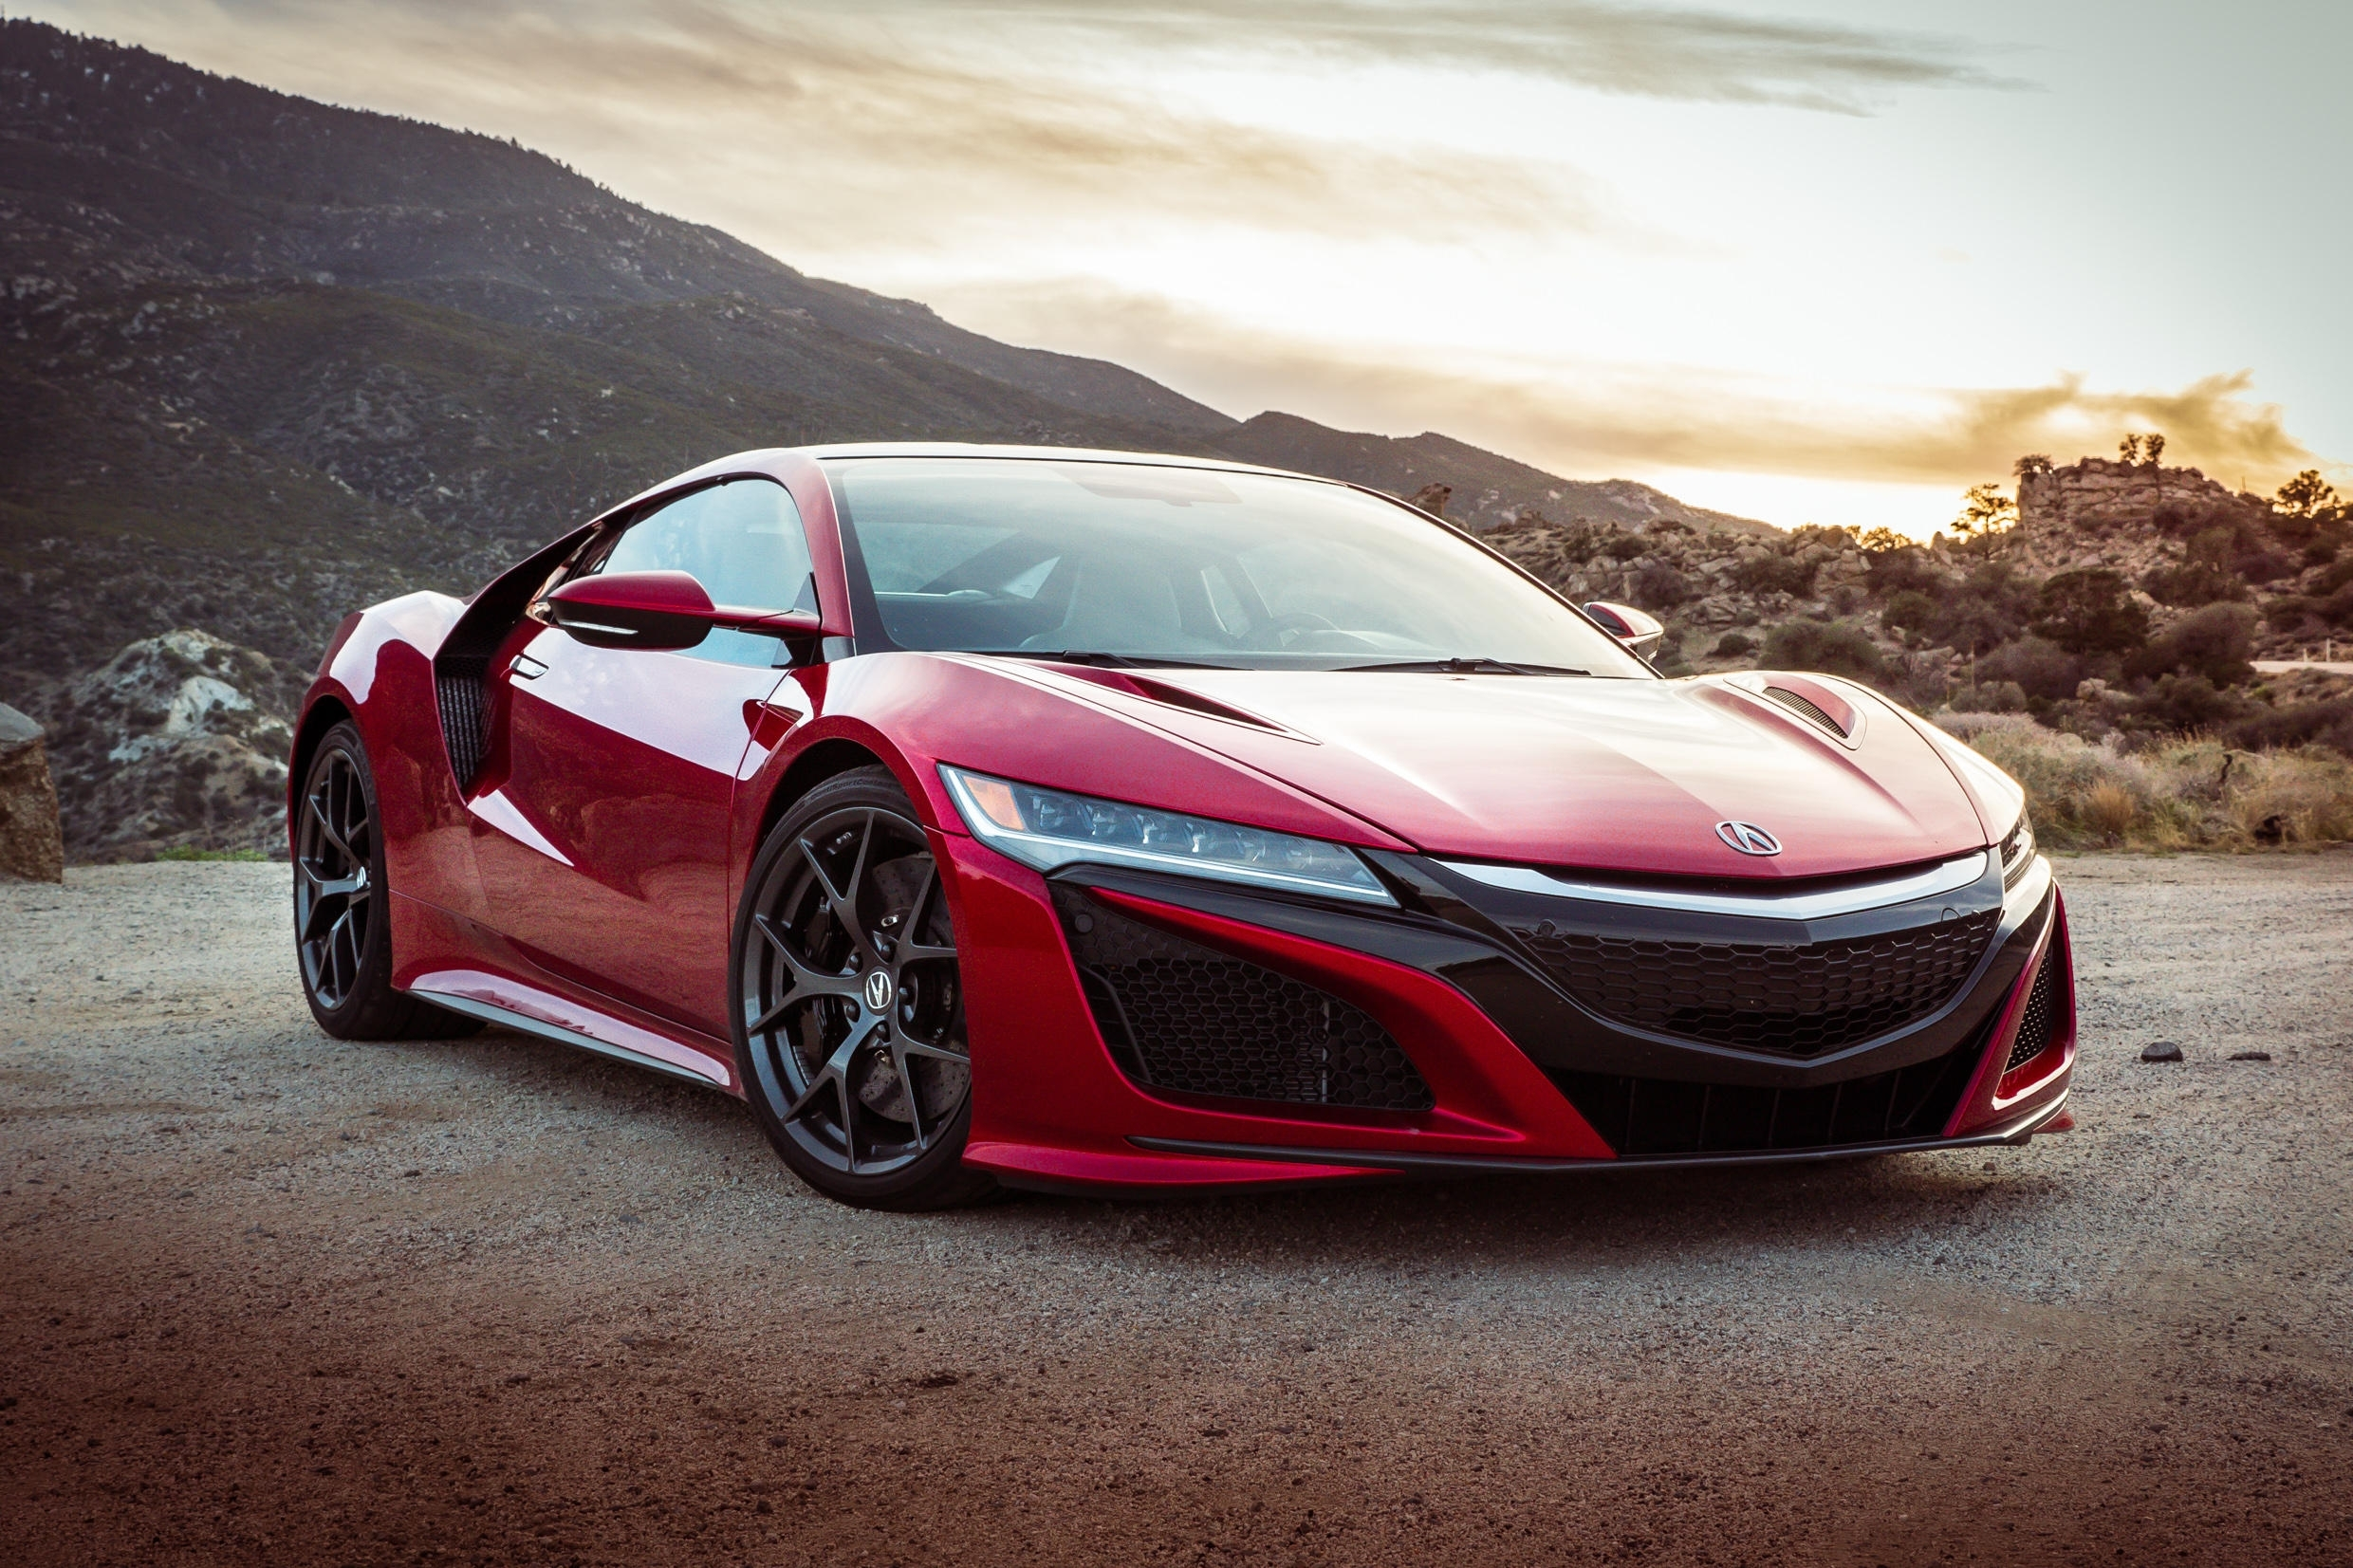 2017 acura nsx, hd cars, 4k wallpapers, images, backgrounds, photos